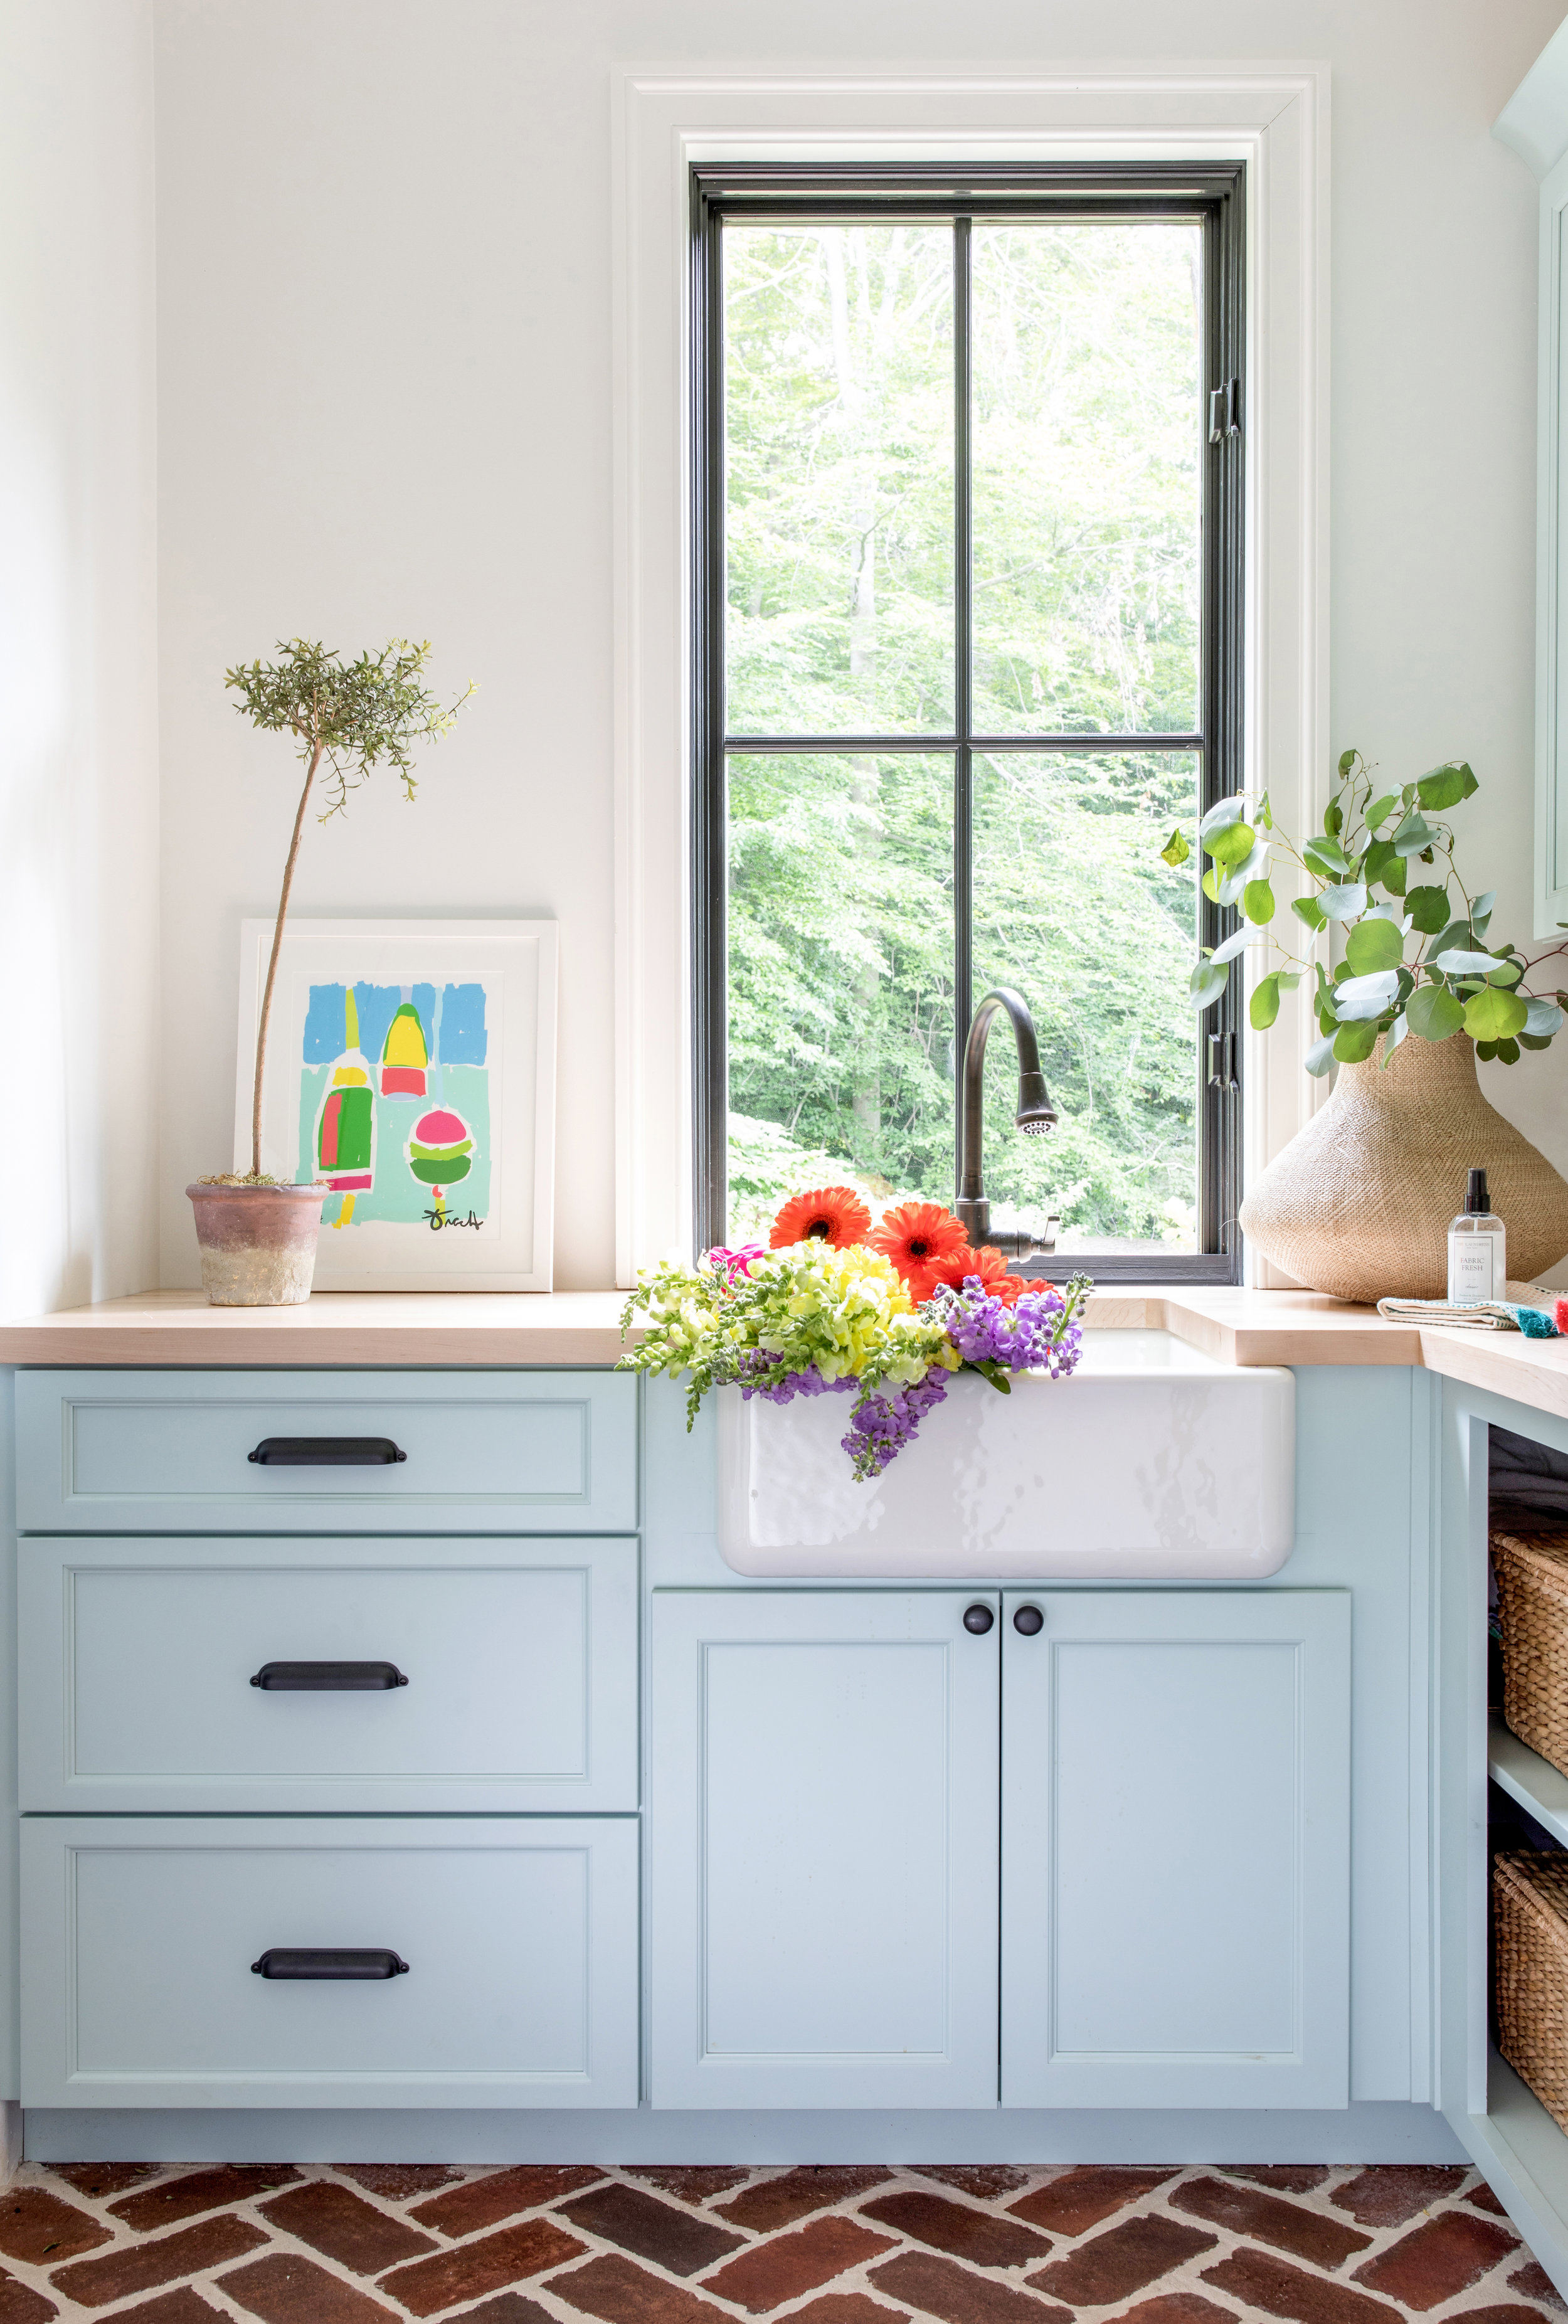 Laundry Room Blue Cabinets Farmhouse Sink Wood Countertops Brick Flooring Black Windows Modern Farmhouse Laundry Room Stephanie Kraus Designs